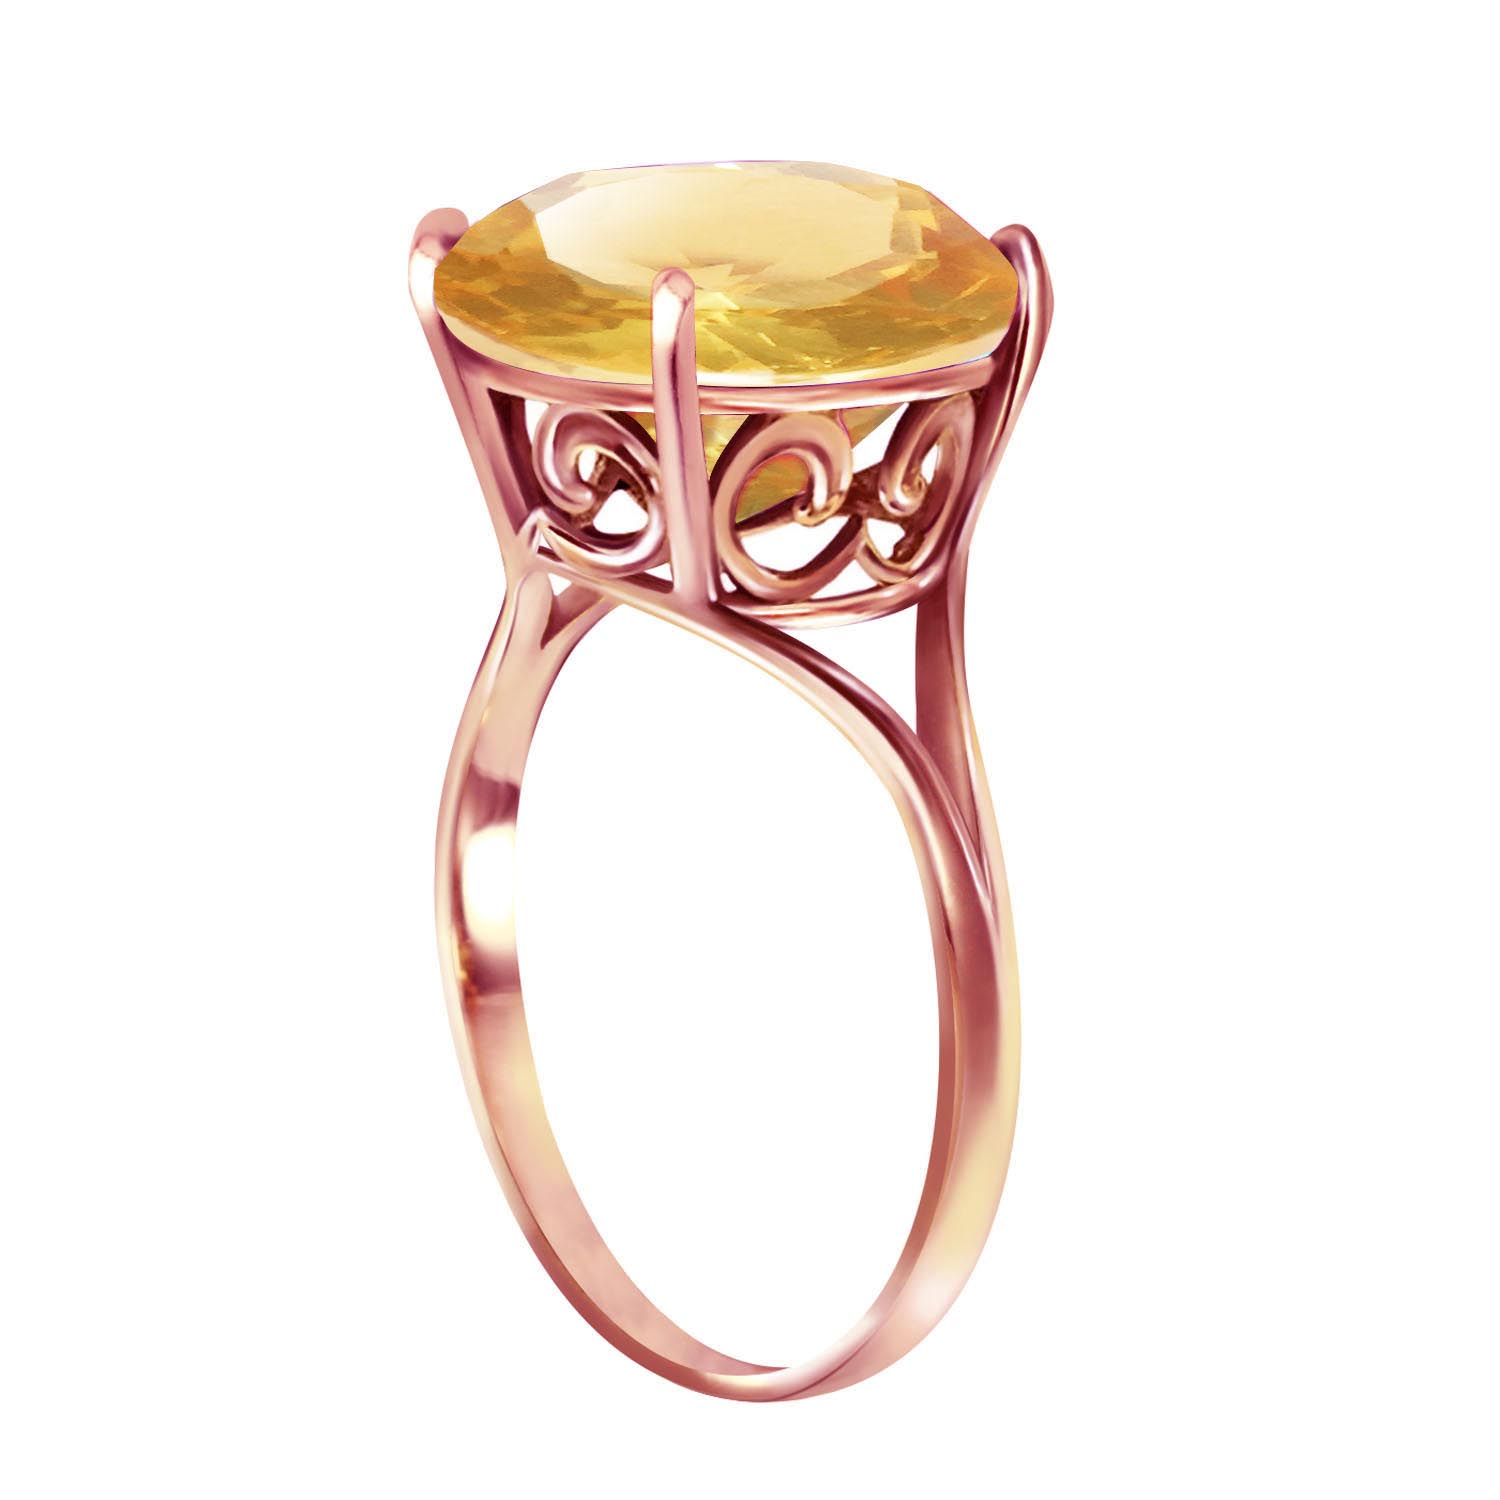 Round Brilliant Cut Citrine Ring 5.5ct in 9ct Rose Gold